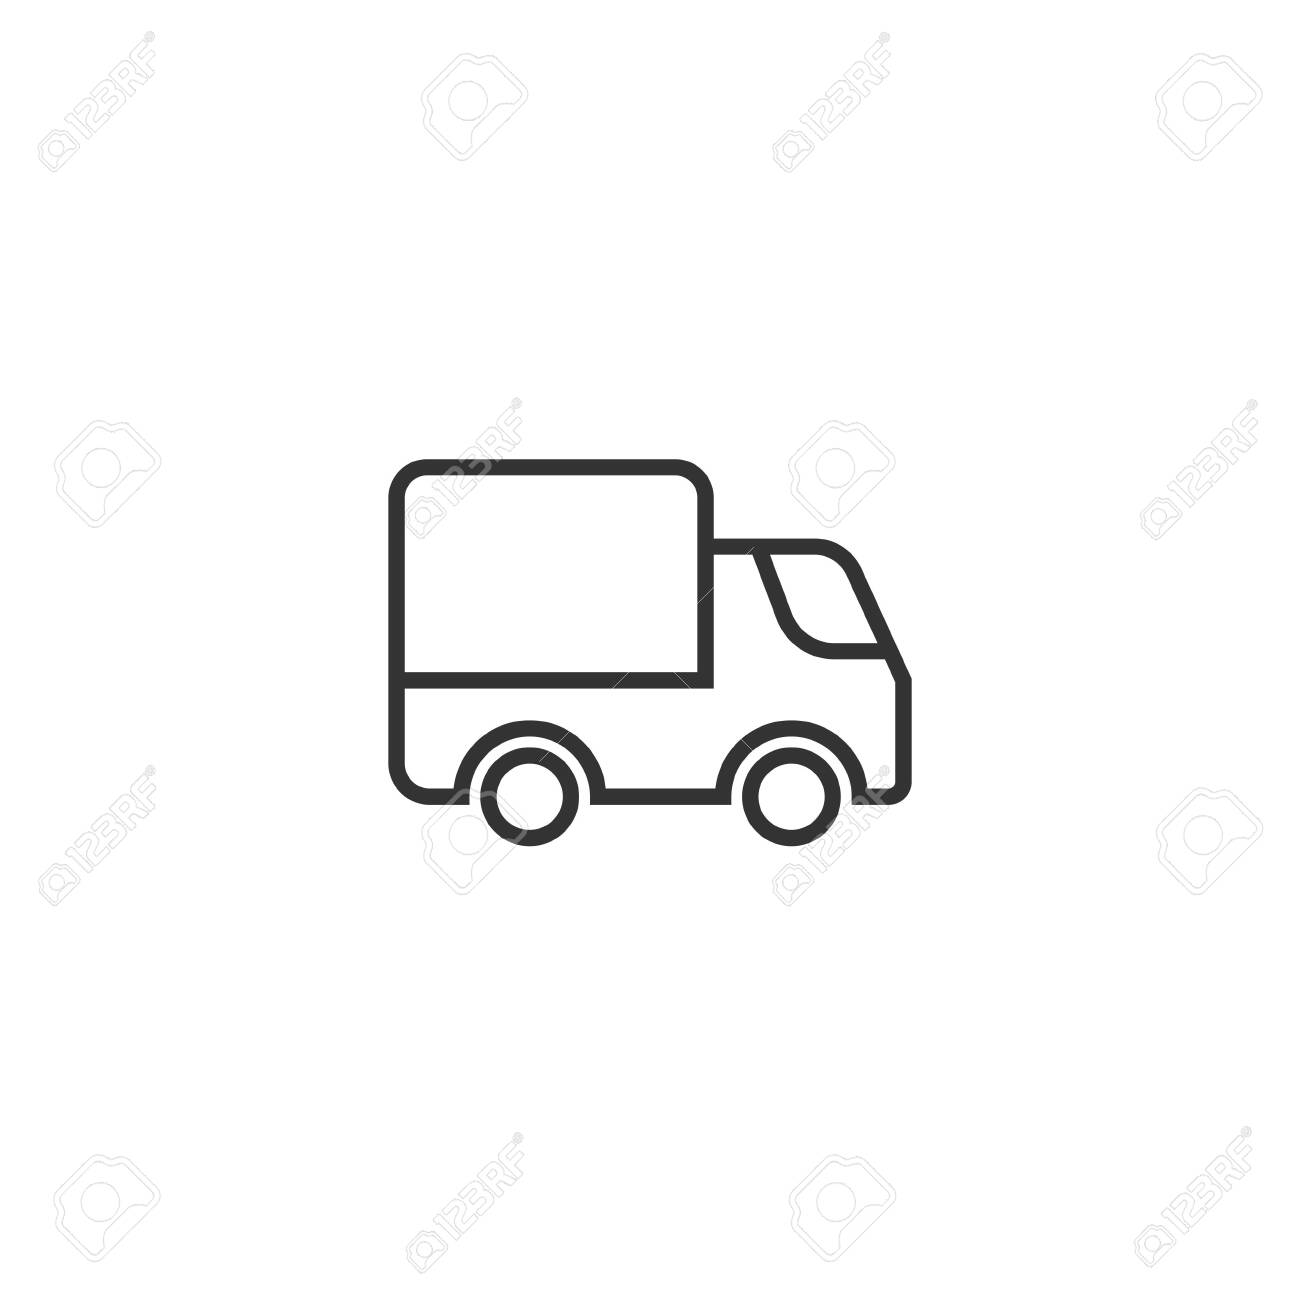 Delivery truck icon in flat style. Van vector illustration on white isolated background. Cargo car business concept. - 136469652